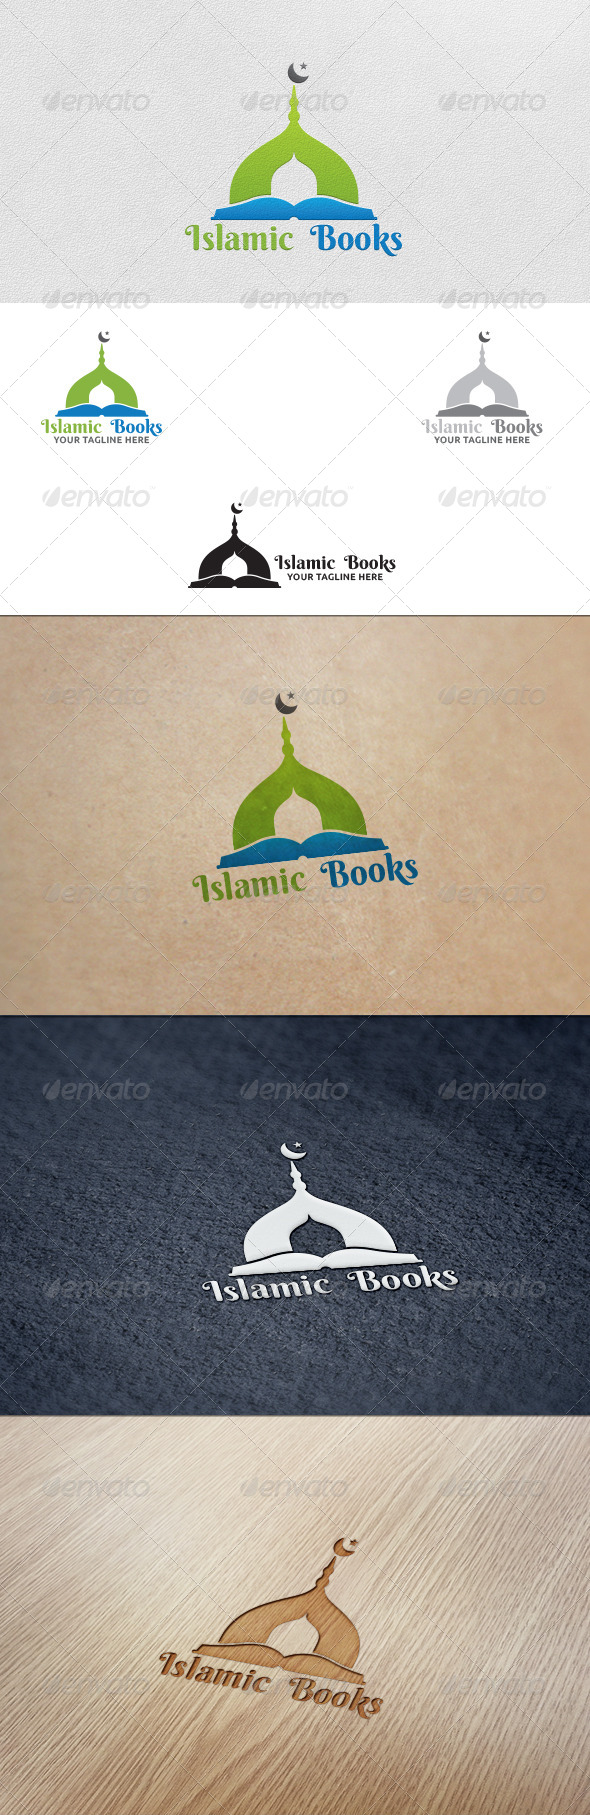 Islamic Books - Logo Template